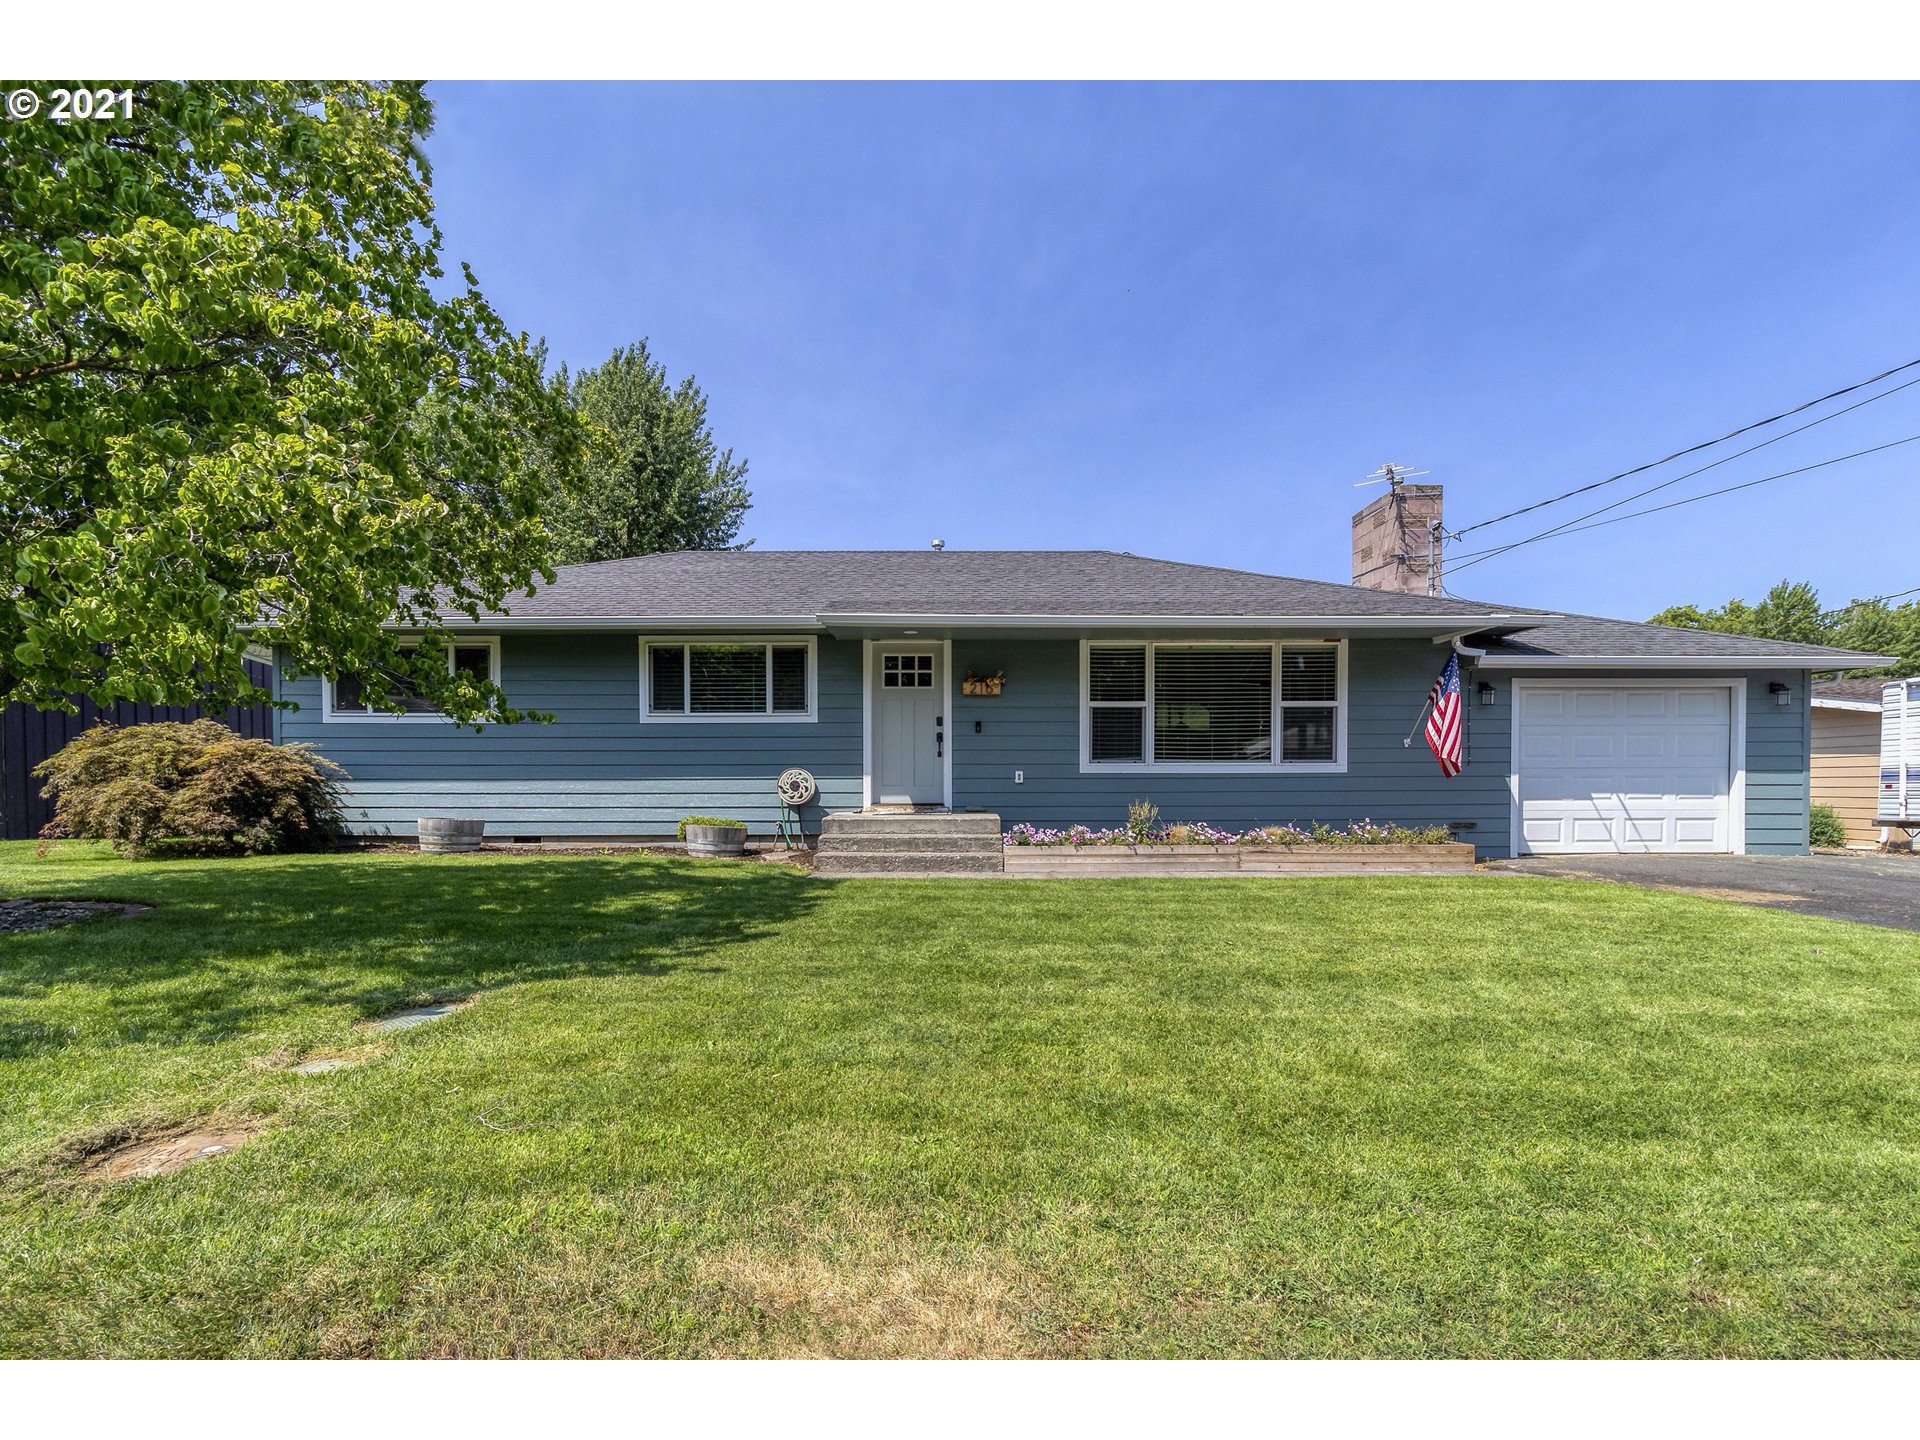 216 PARKVIEW ST, Milton-freewater OR 97862